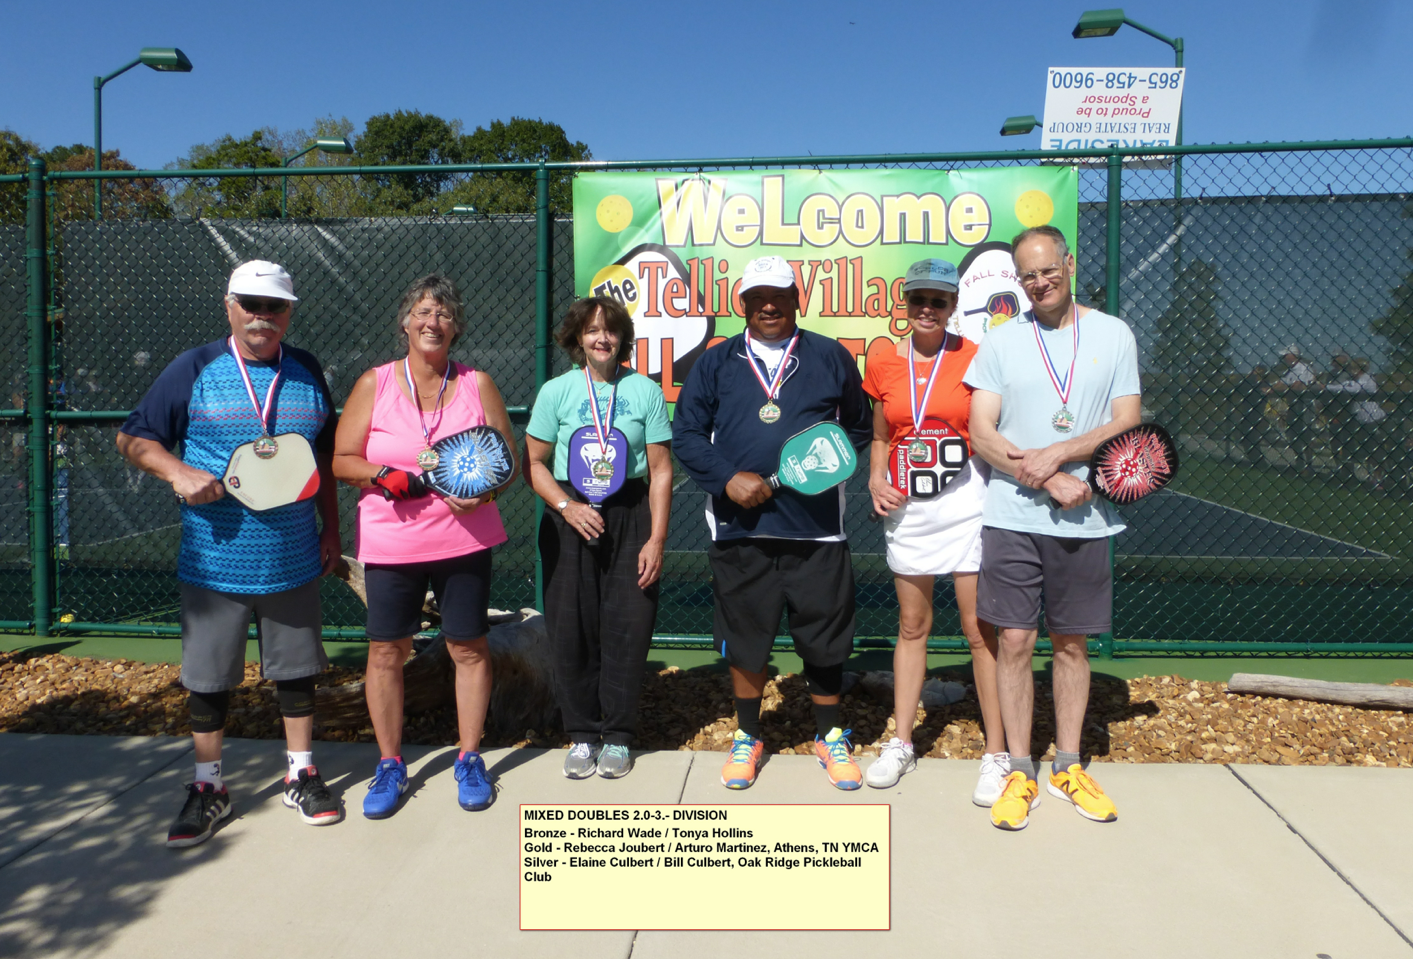 Mixed Doubles - 2.0-3.0 Division